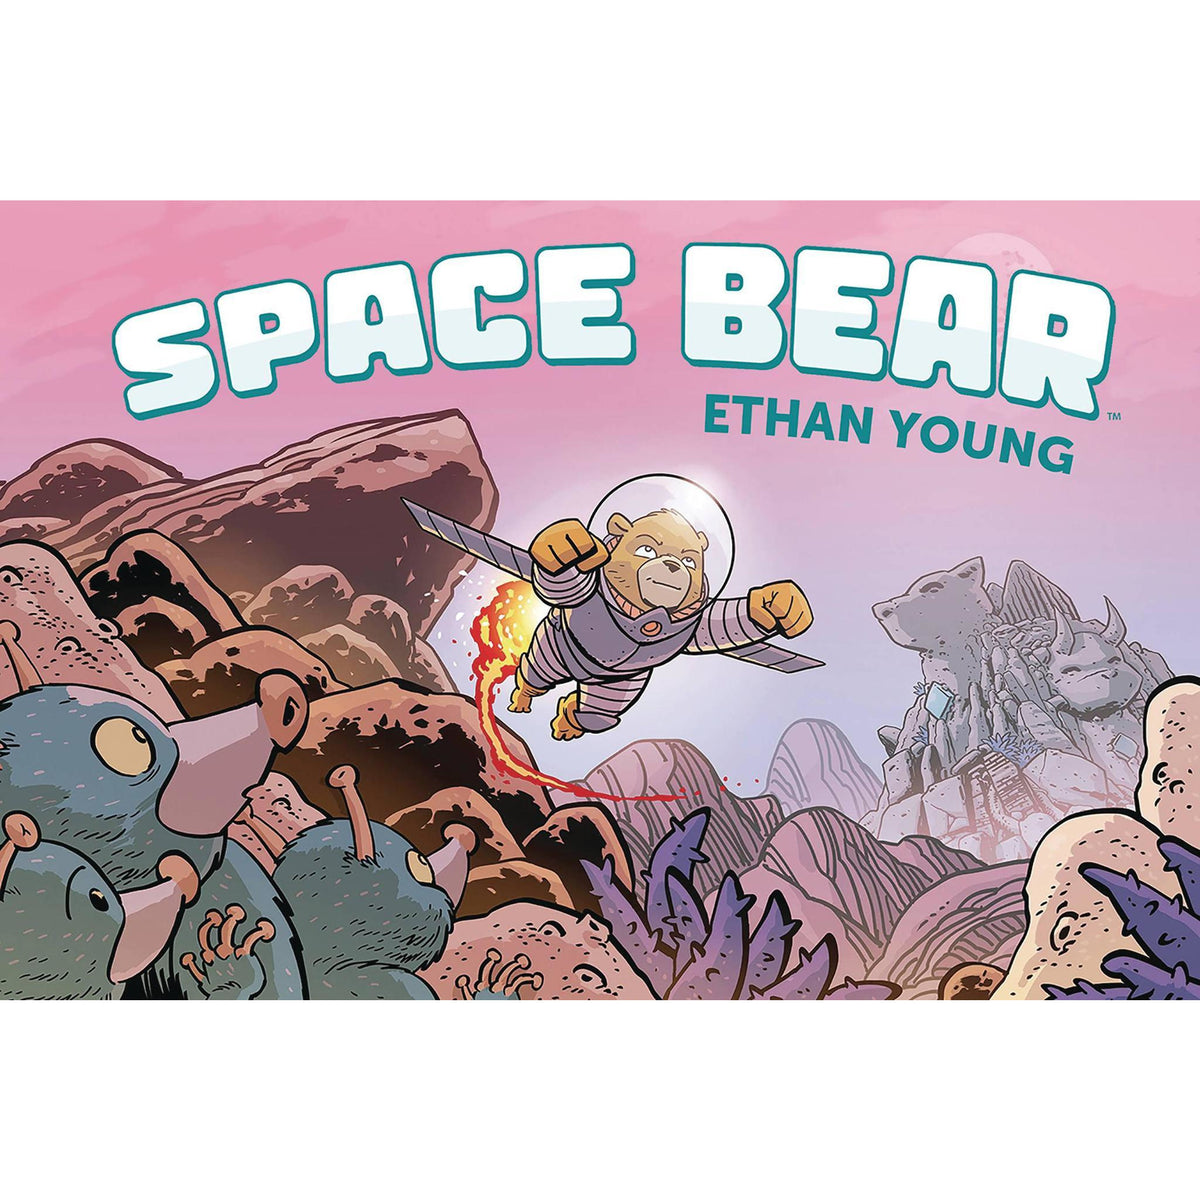 SPACE BEAR ORIGINAL GRAPHIC NOVEL